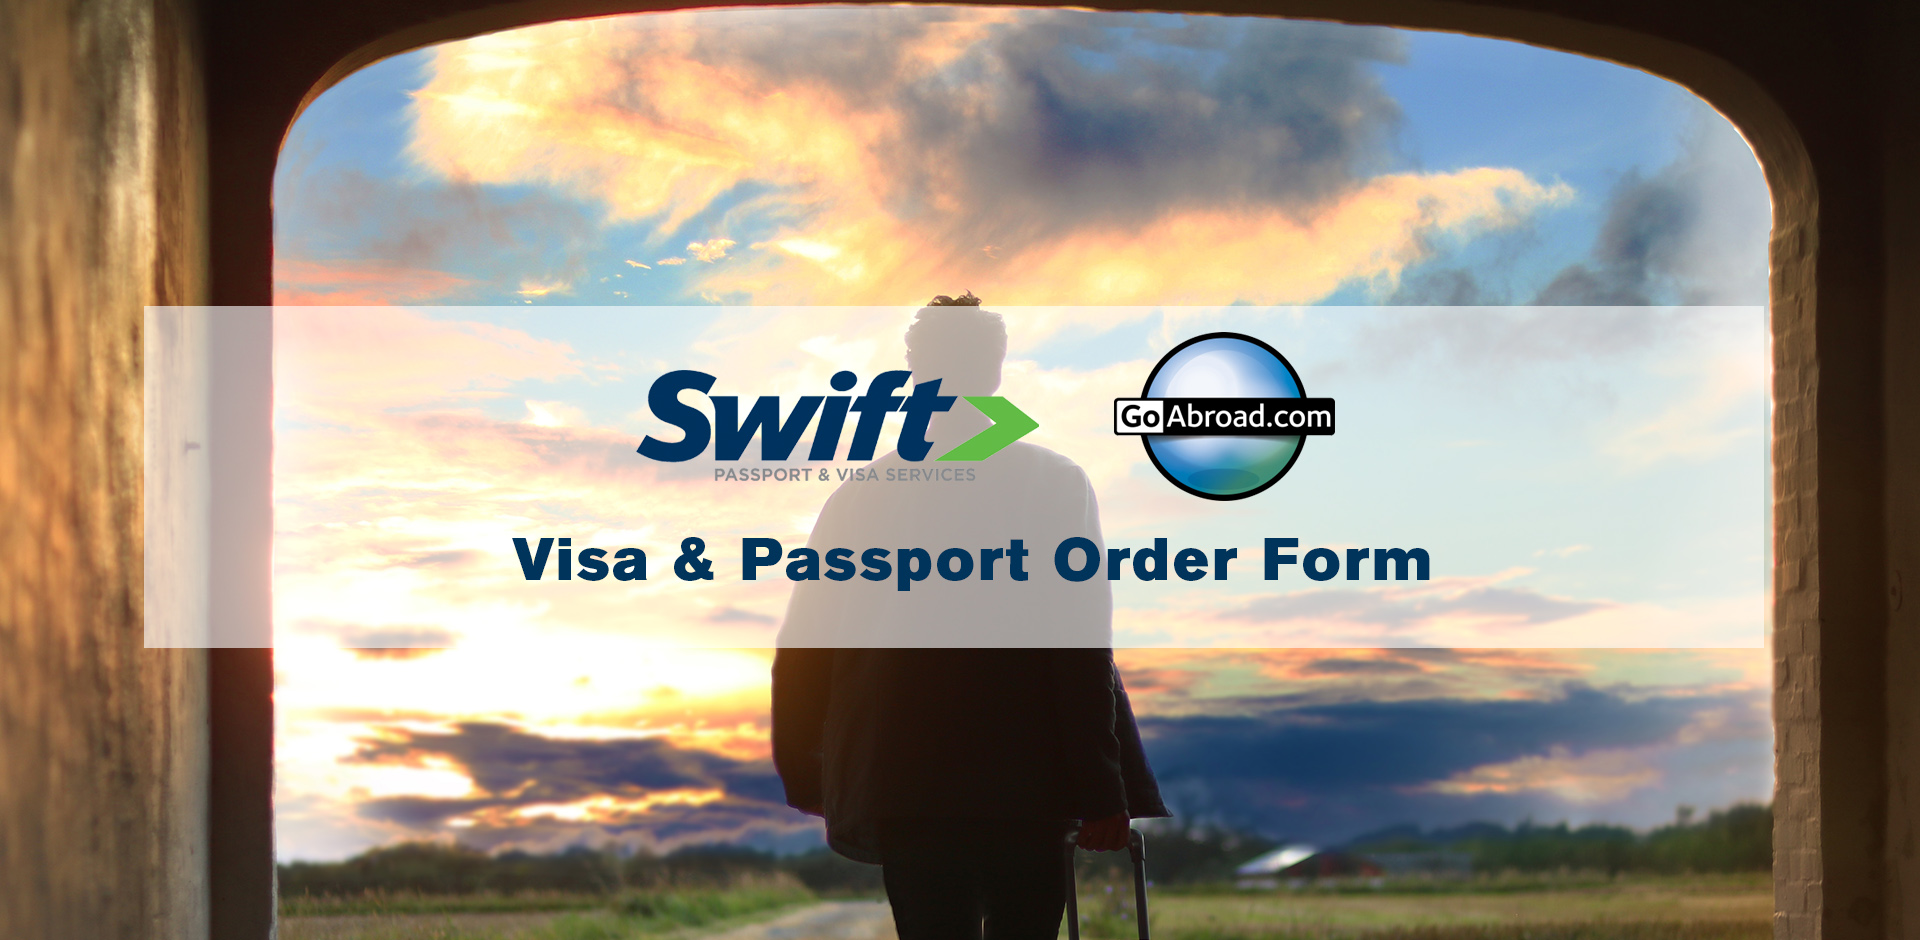 Go Abroad Passport and Visa Order Form Image